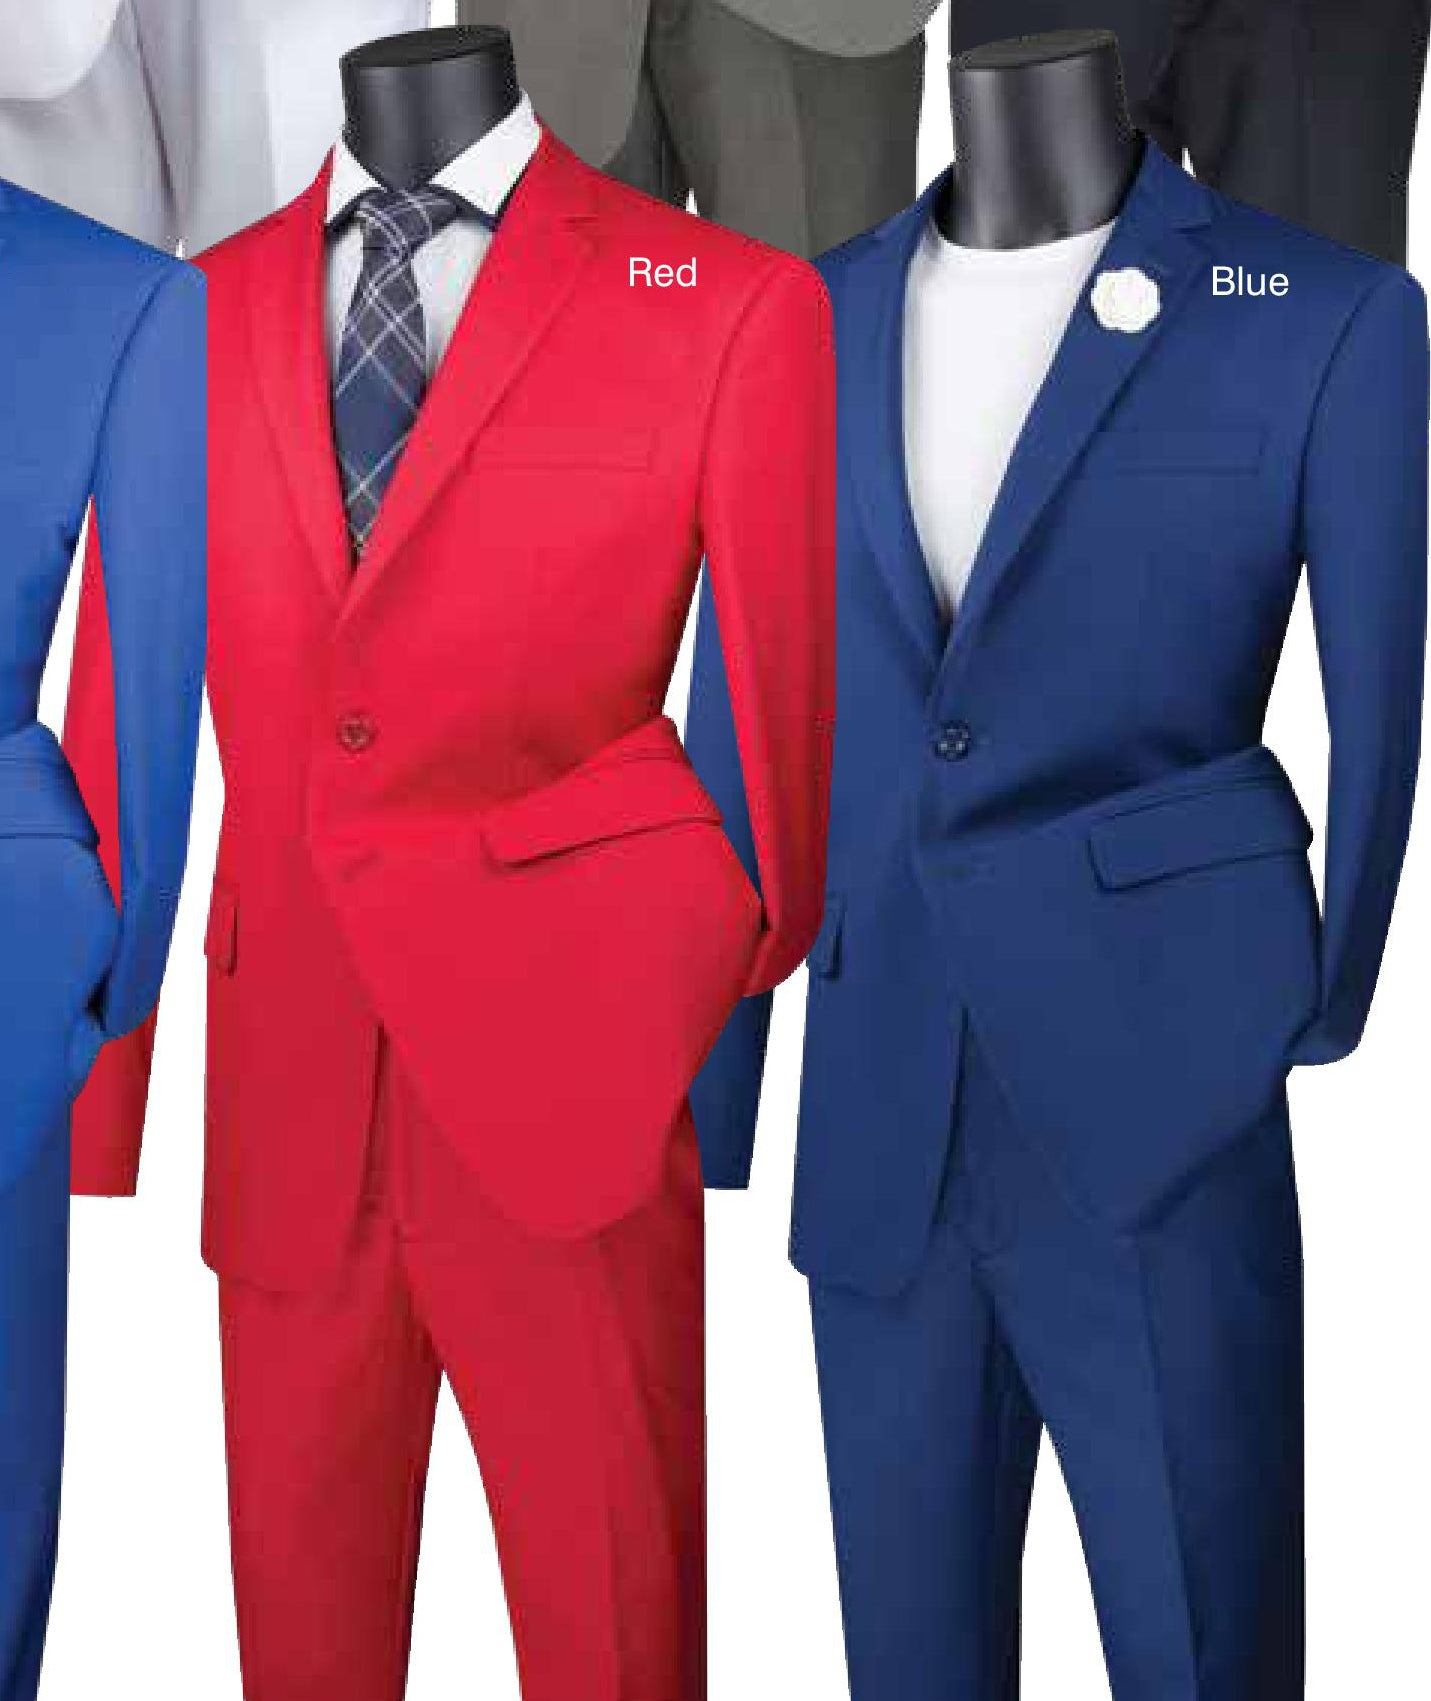 Vinci Slim Fit 2 Piece 2 Button Suit (Red | Blue) SC900-12 | B